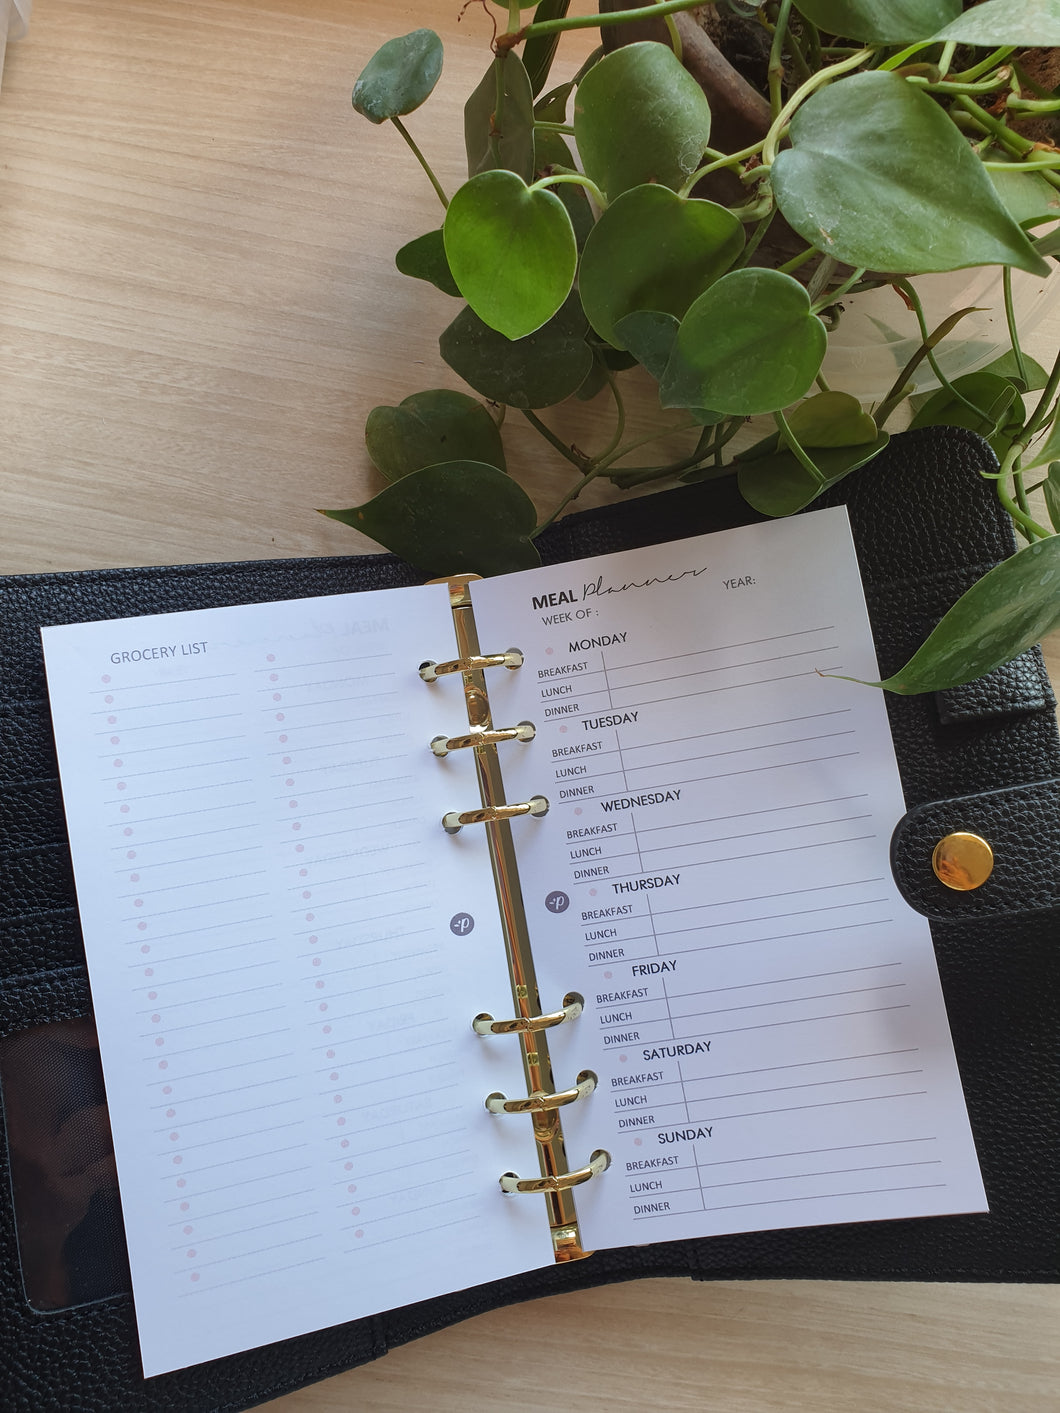 Meal Planner + Grocery List Blush Planner Refill for Kikki.K Kate Spade Filofax and other Planners